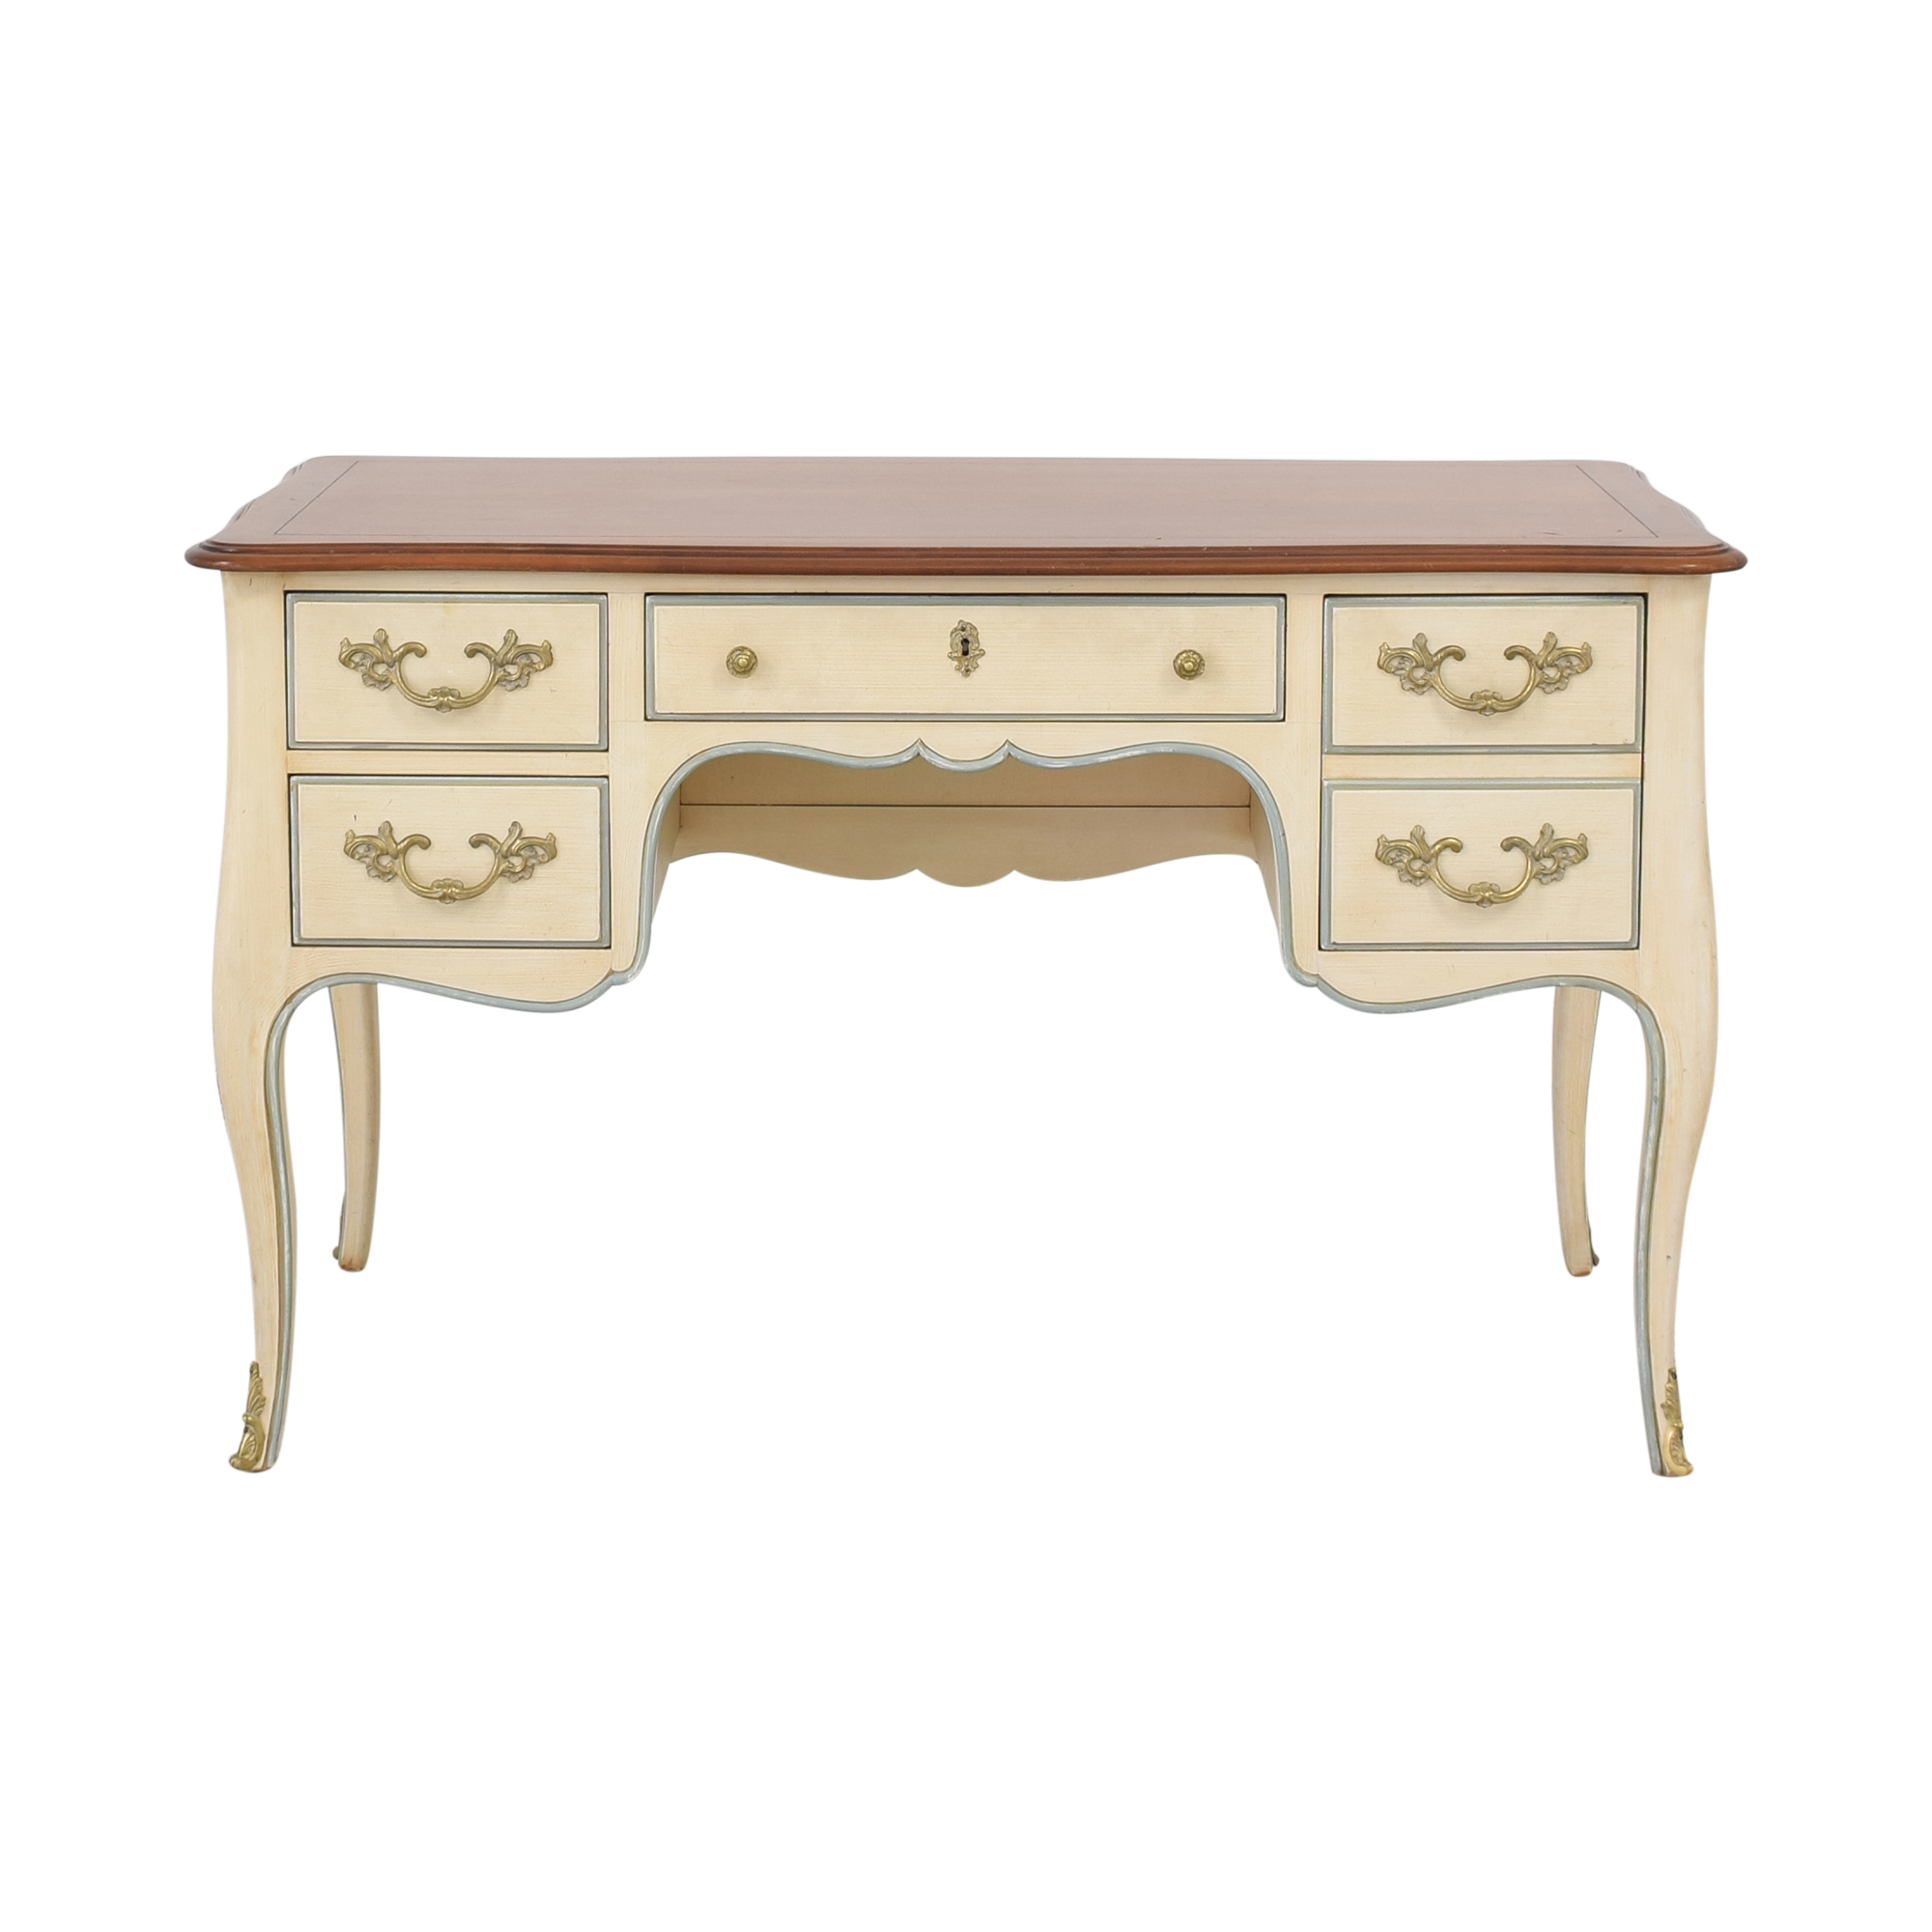 buy Kindel Kindel Vintage French Provincial Desk online